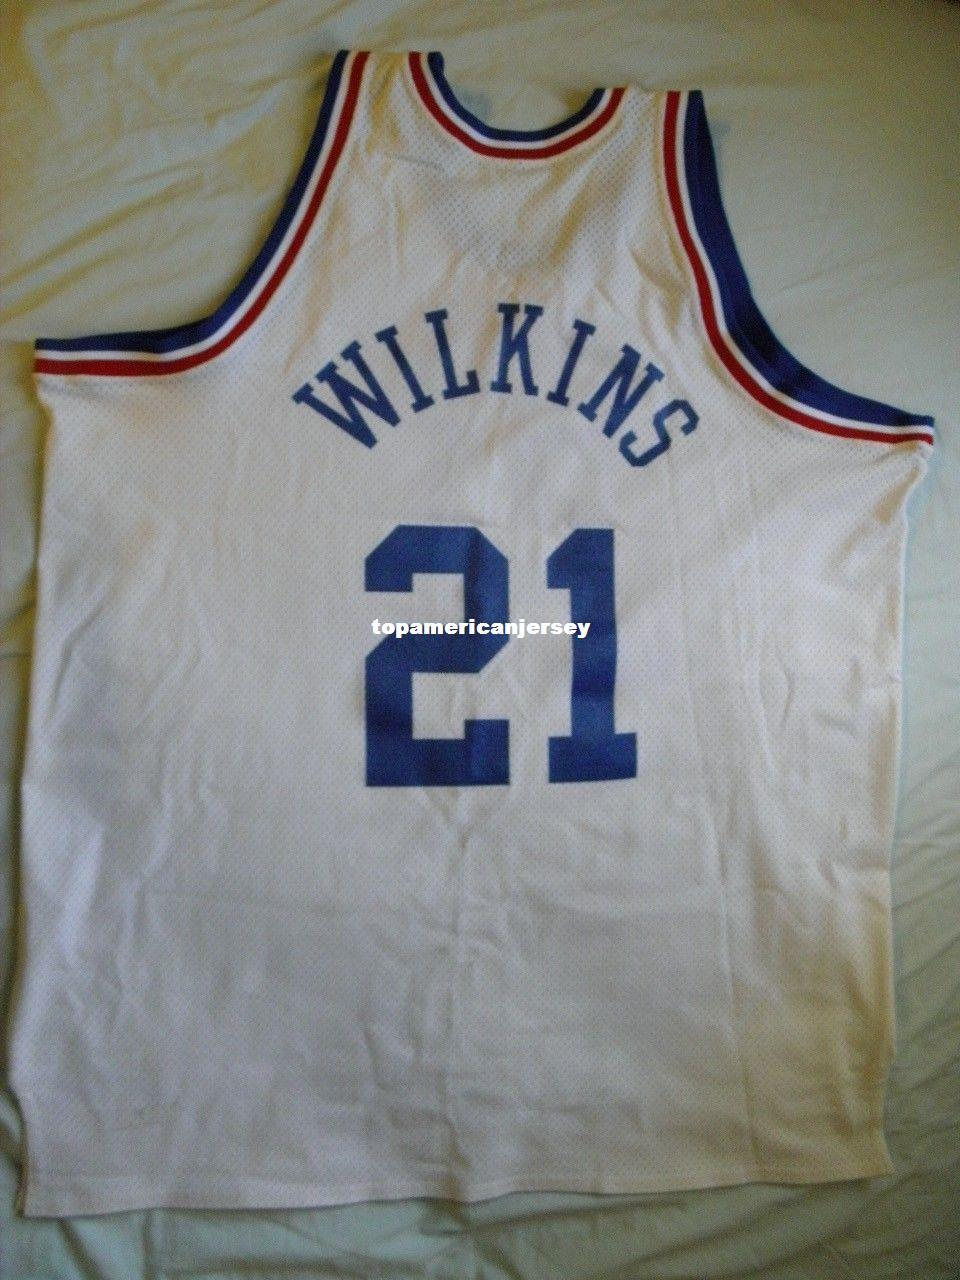 d177770c7 2019 Mitchell Ness M N High Quality All Star Jersey  21 Dominique Wilkins  USA 54 USA XXL 2X Mens Vest Size XS 6XL Stitched Basketball Jerseys Nca  From ...